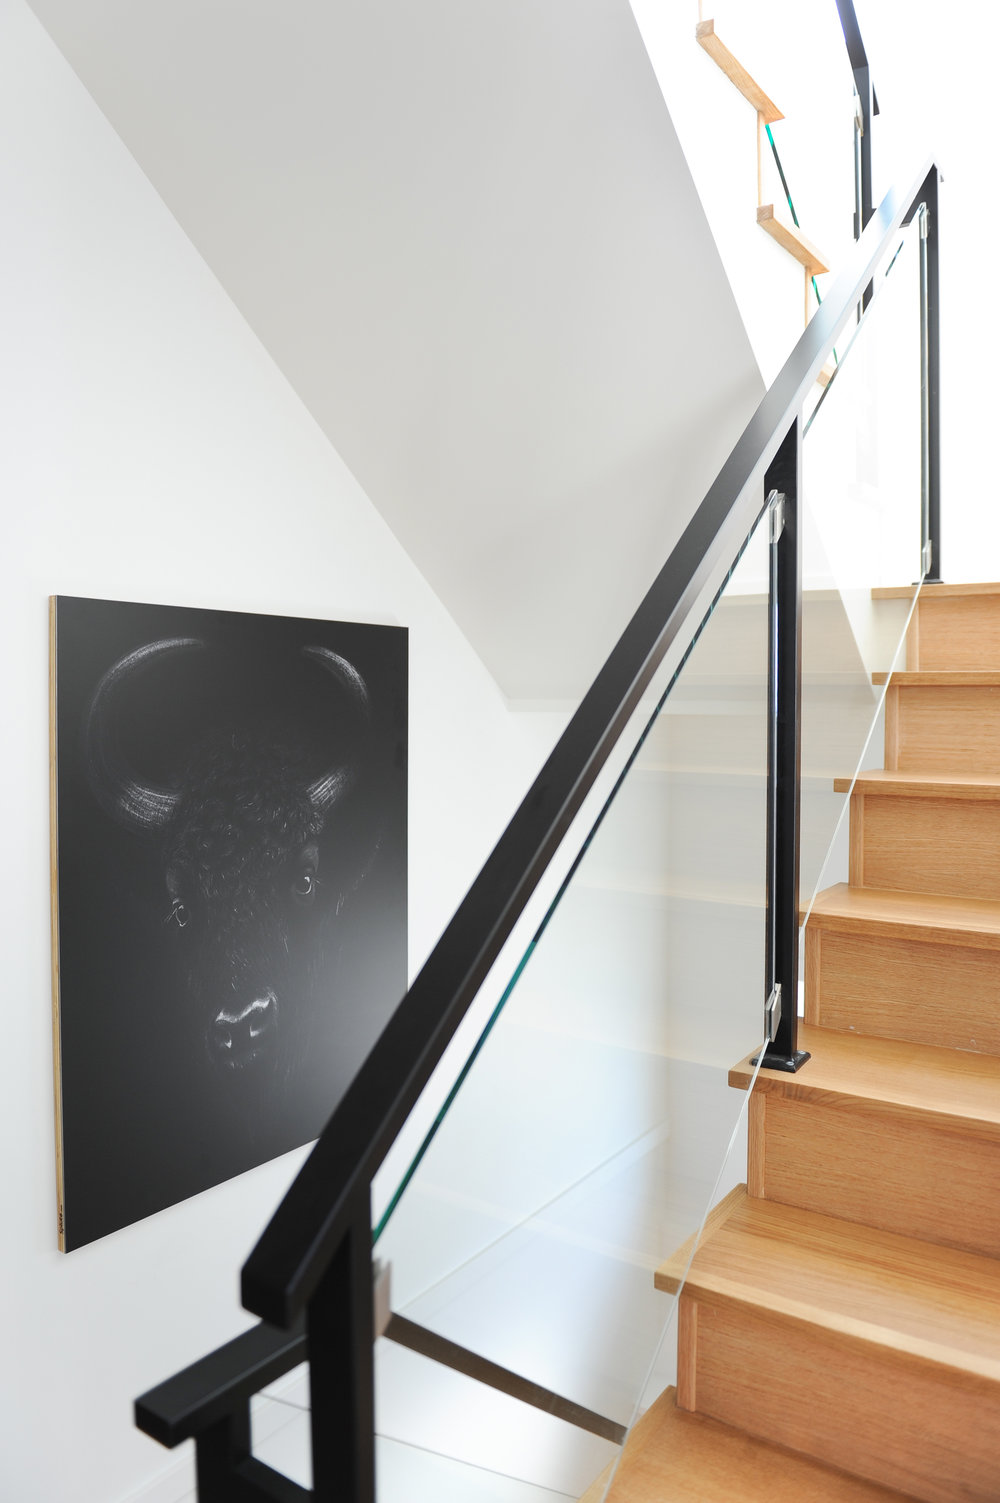 A black and white picture of a bovine hangs on the hallway walls next to a wooden staircase with glass railings.